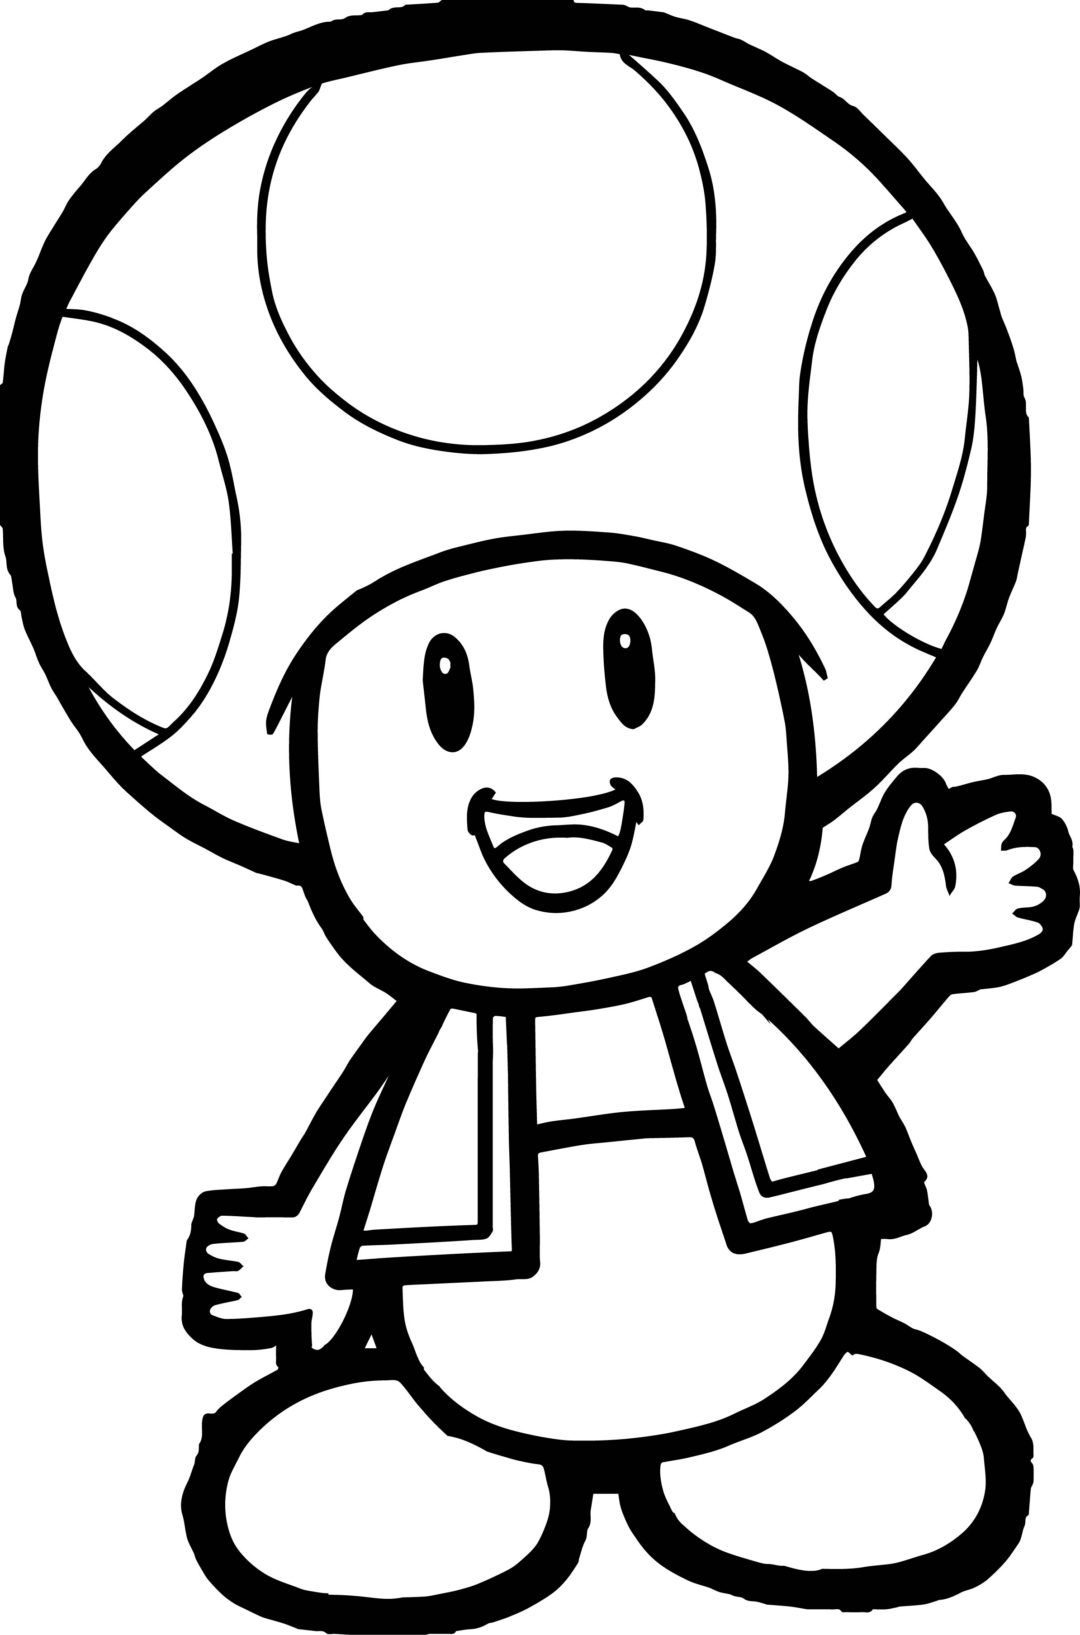 Coloring Rocks Mario Coloring Pages Super Mario Coloring Pages Cute Coloring Pages